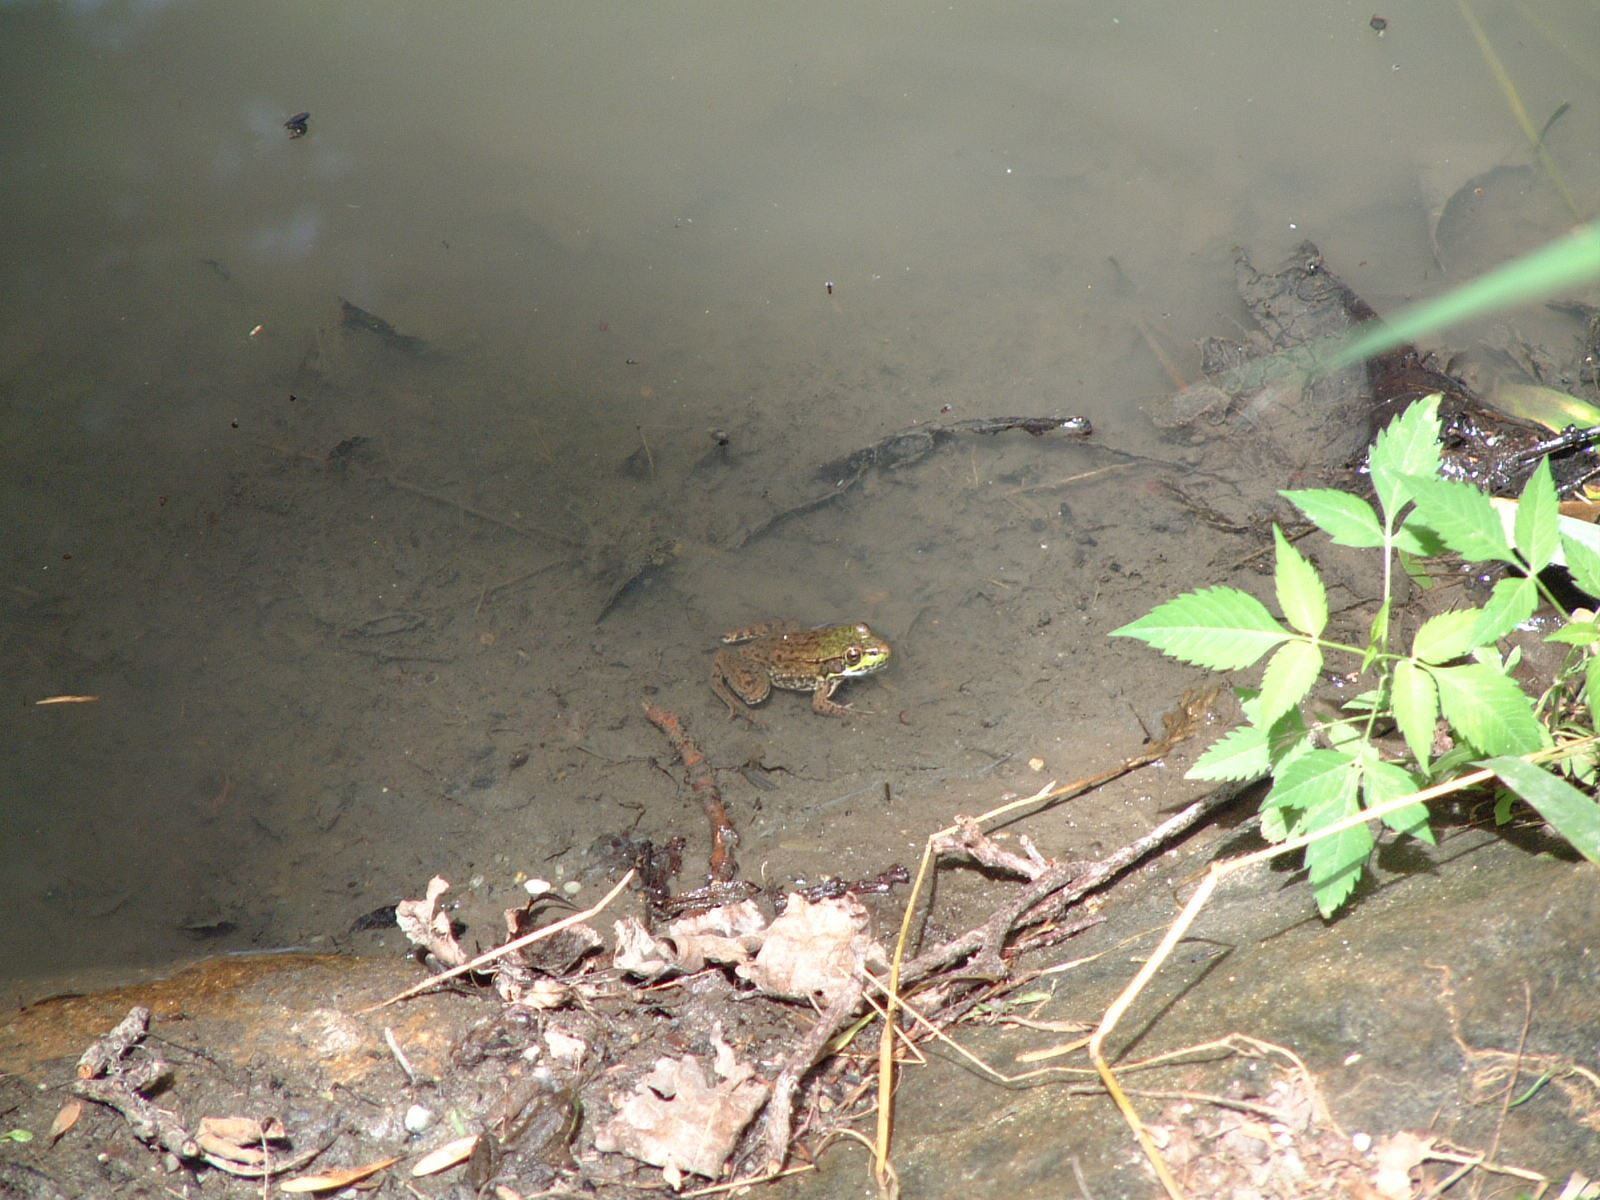 A frog sits in the water near the shore of the lake